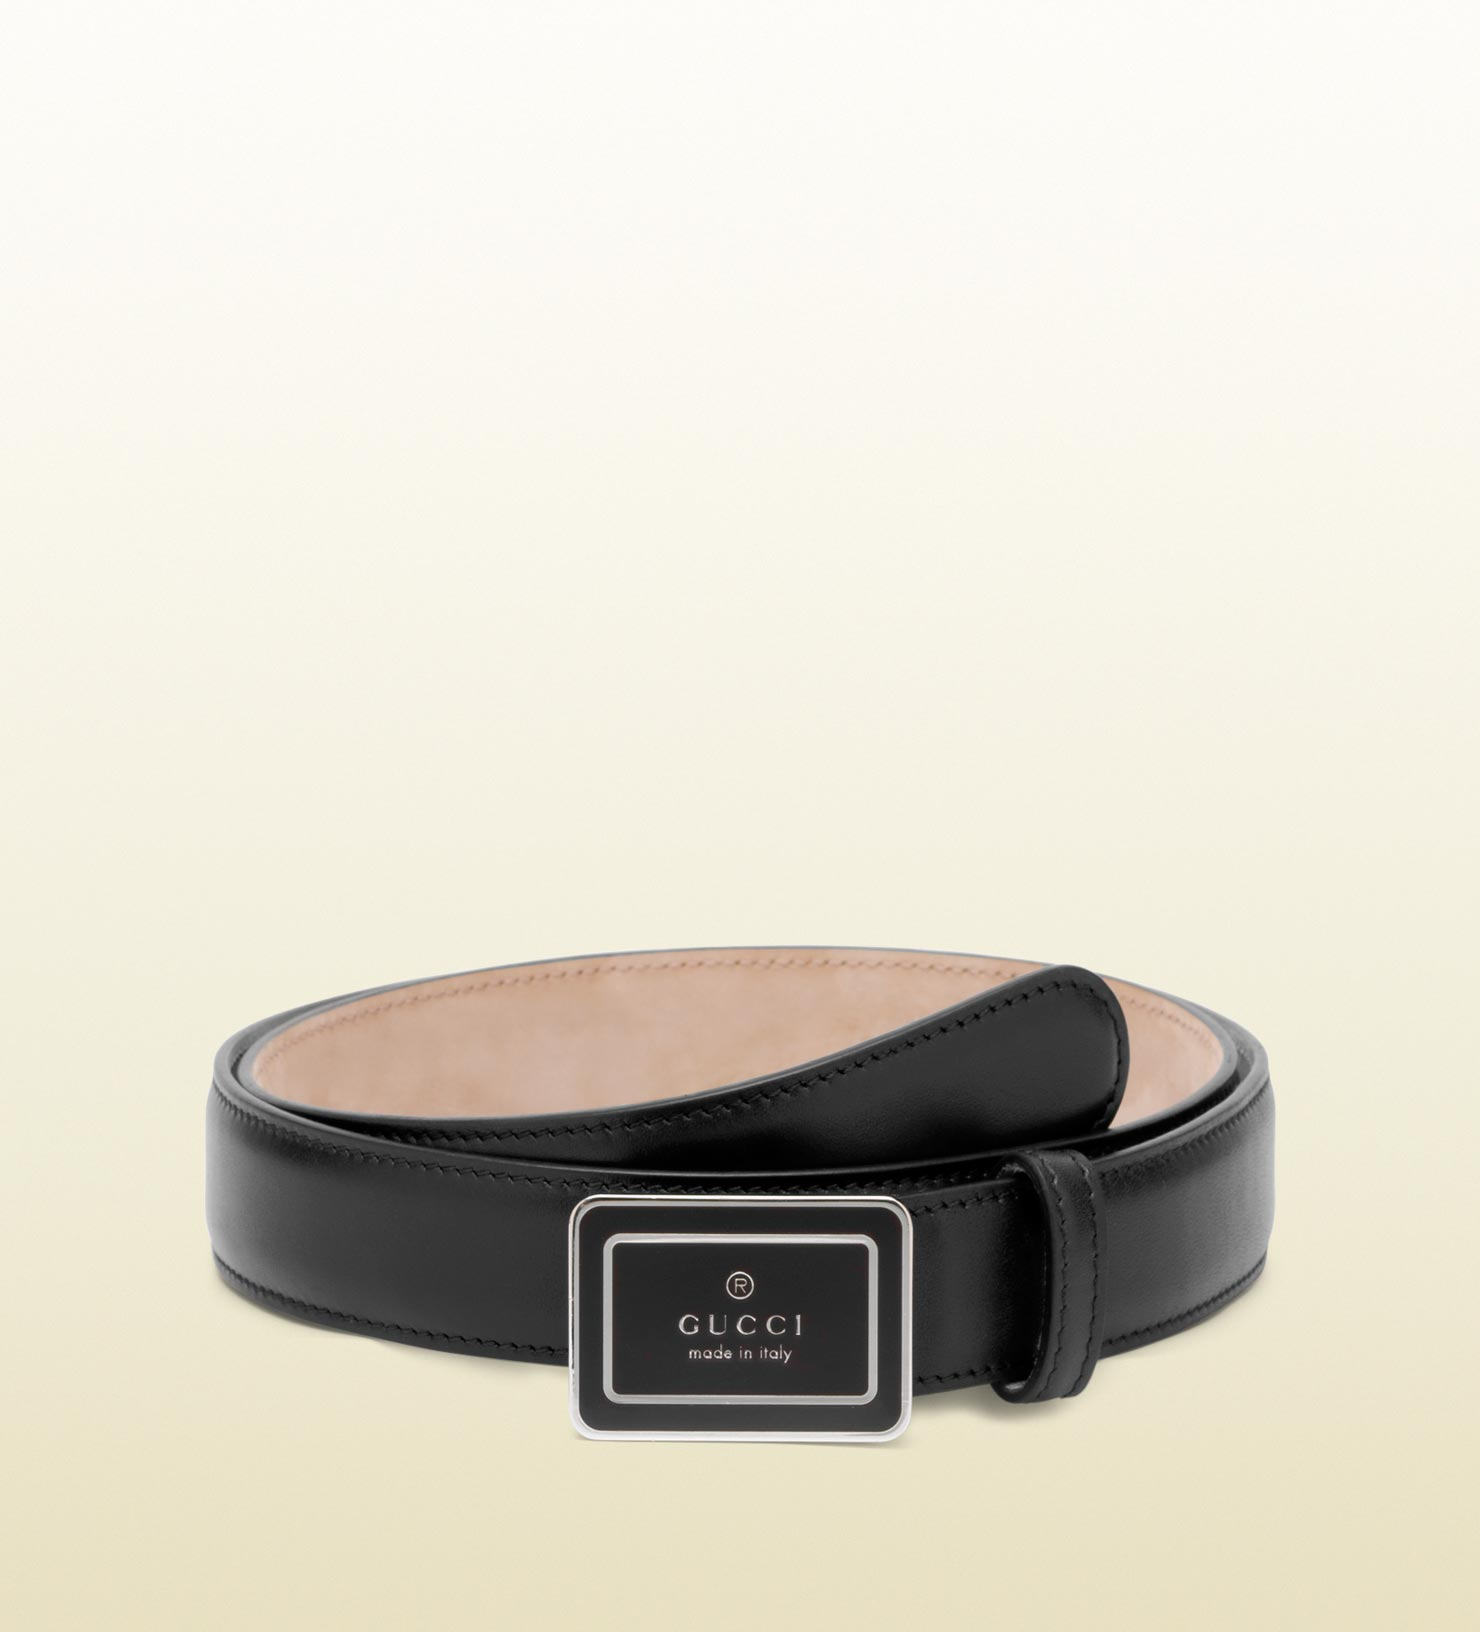 bf04b17c7 Lyst Gucci Belt With Enamel Plaque Buckle In Black For Men. Leather Belt  With Horsebit